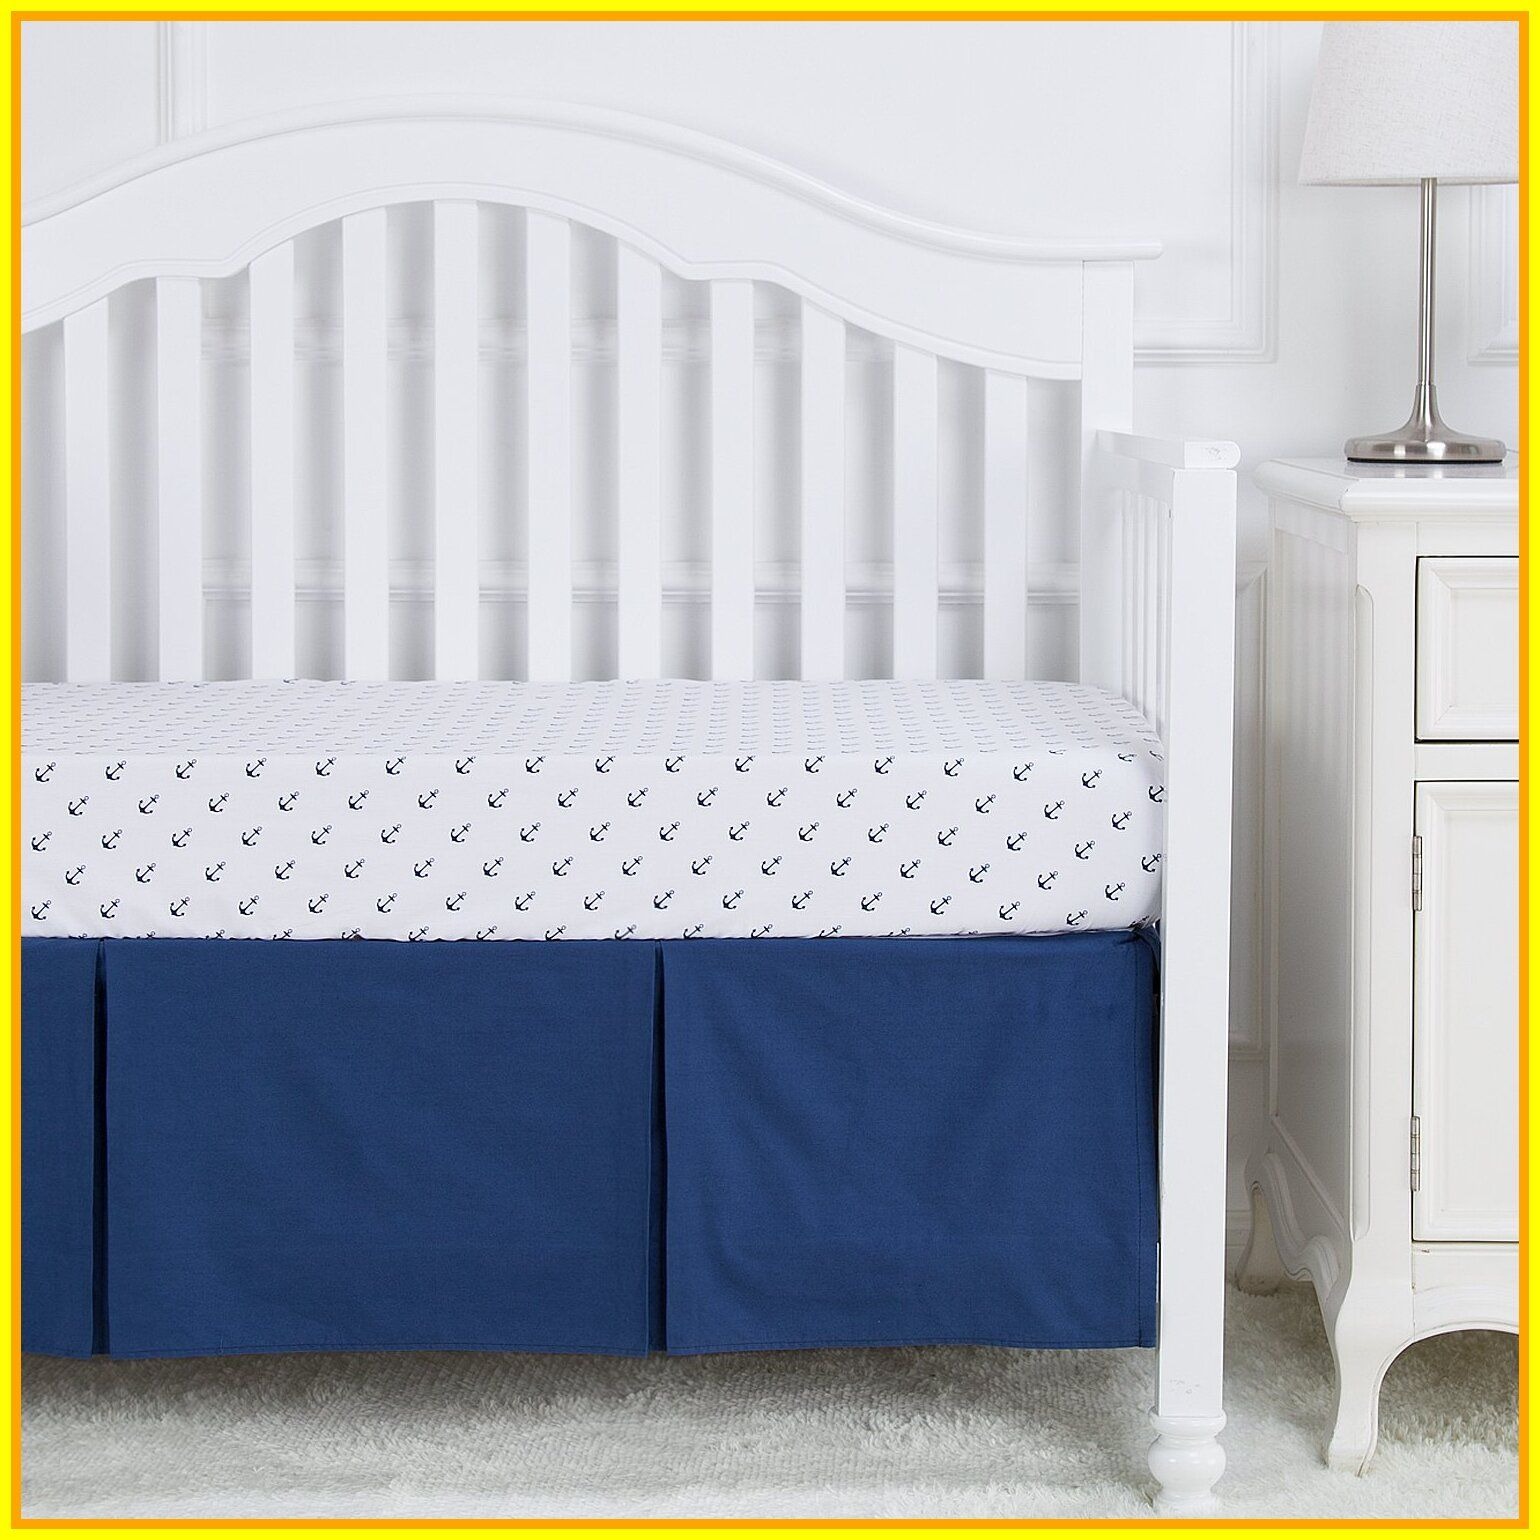 37 amazon crib sheets organic #amazon #crib #sheets #organic Please Click Link To Find More Reference,,, ENJOY!!